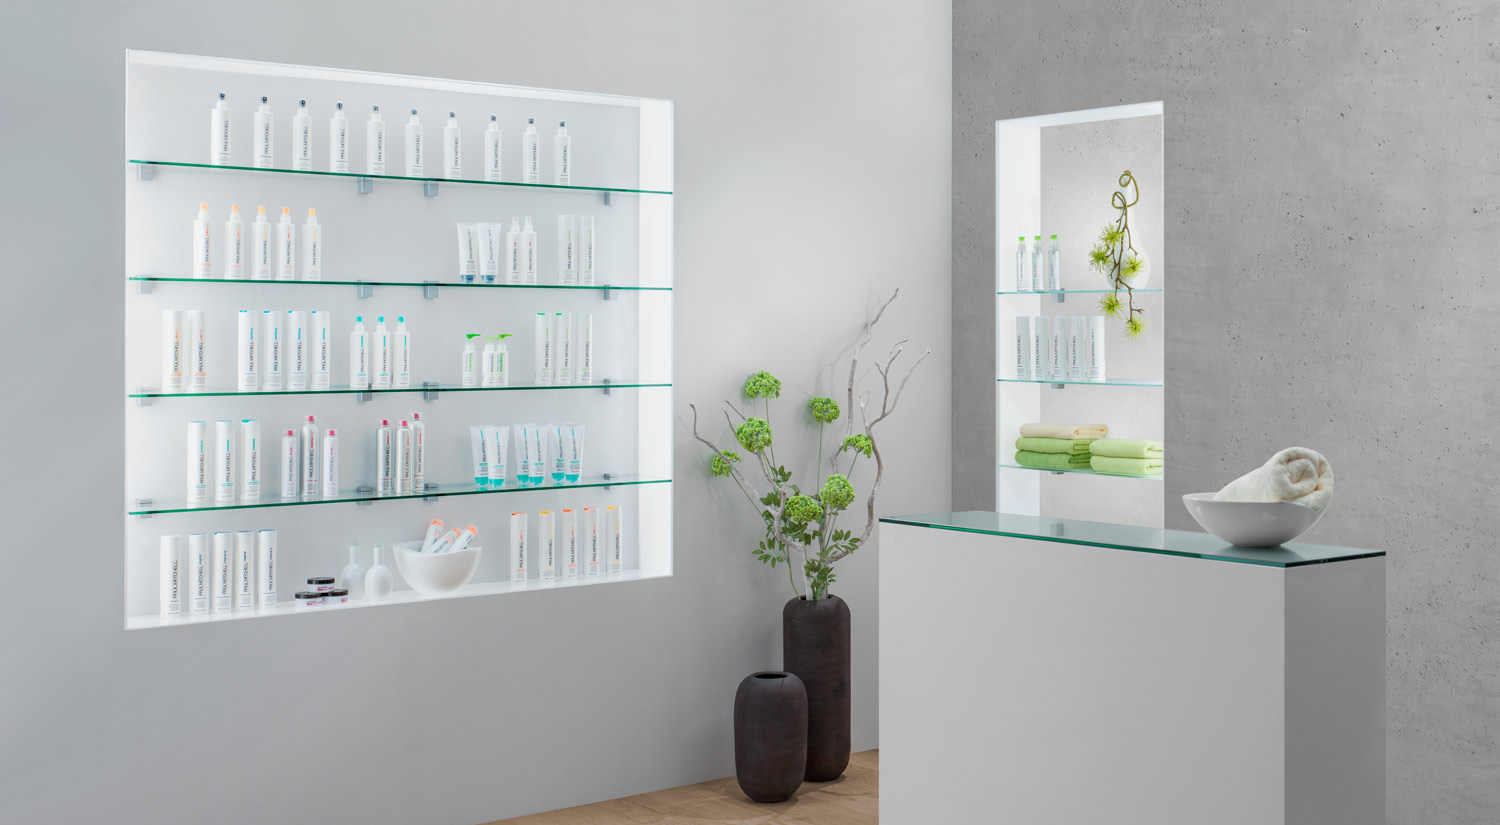 Glass shelf - SQUARE glass shelf clear and satin glass with BLOC shelf bracket for shop fittings